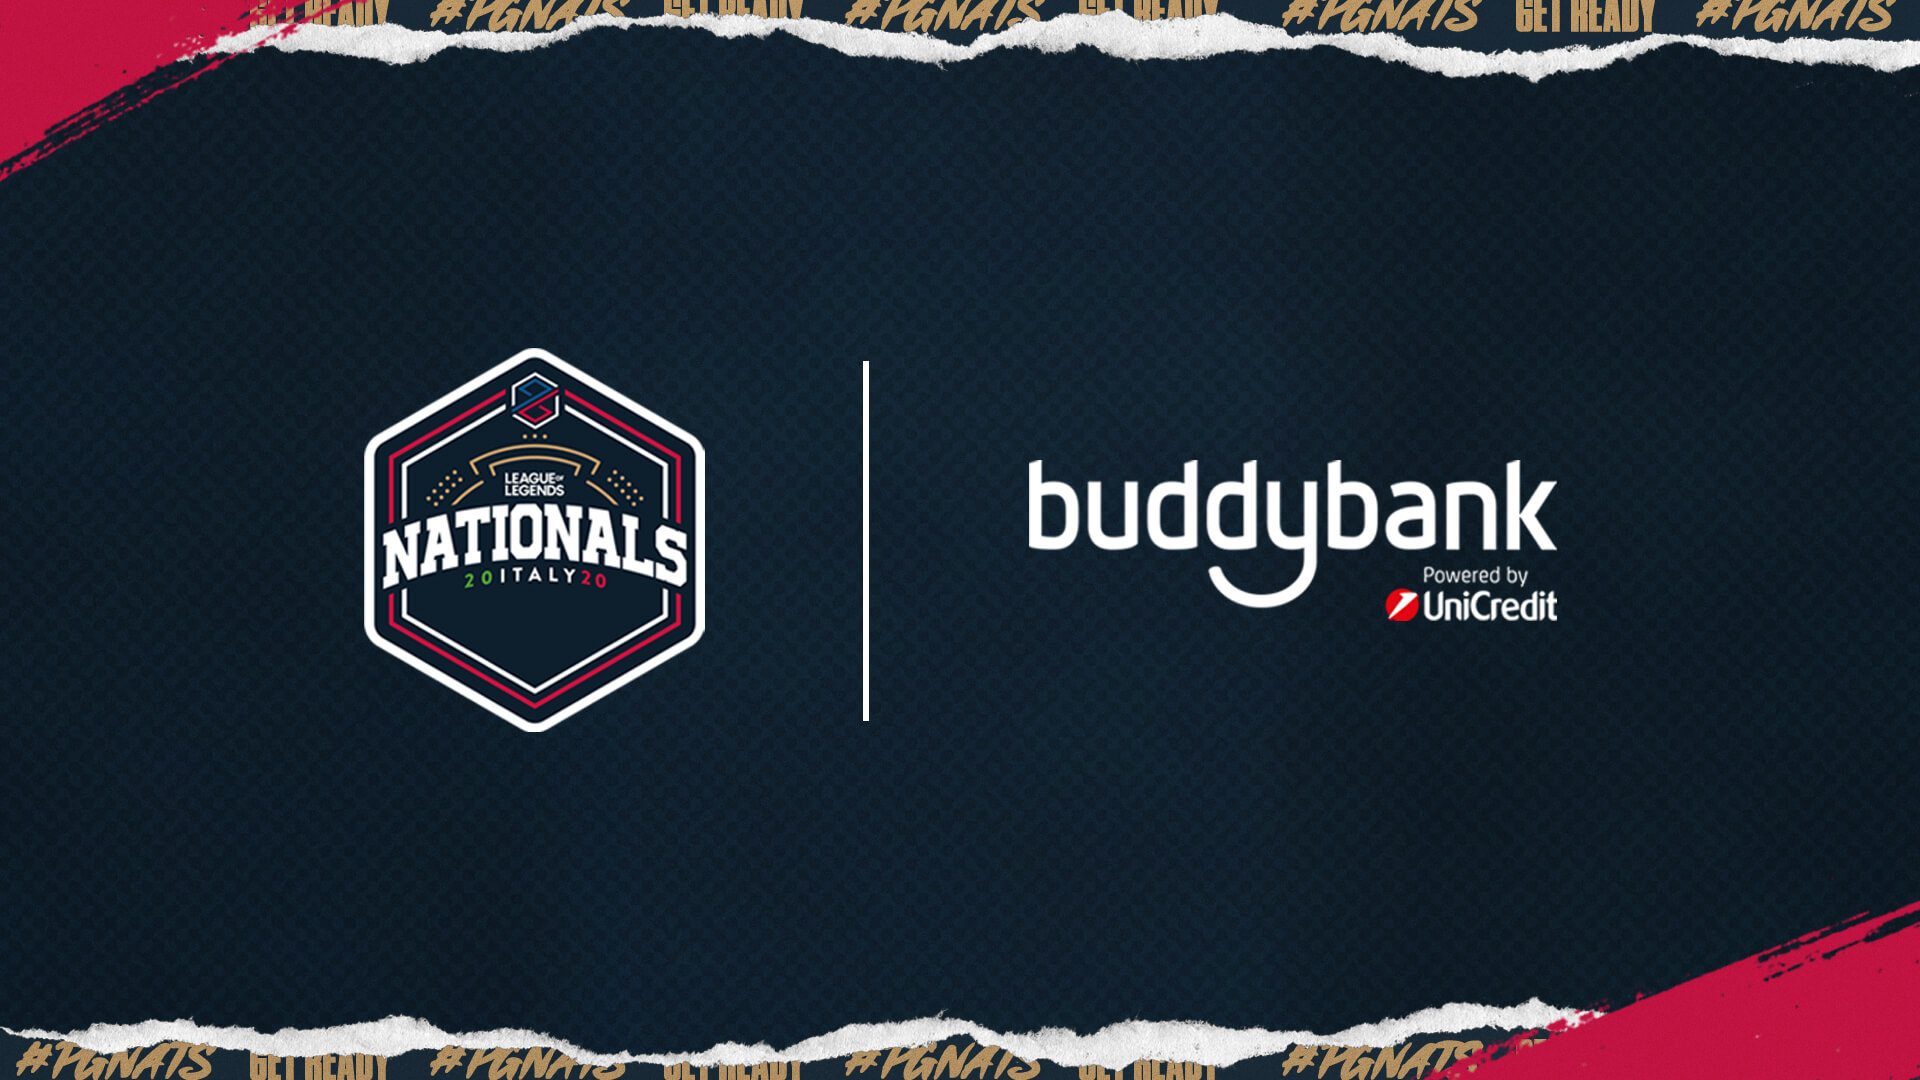 PG Nationals Summer Split: l'edizione 2020 è powered by buddybank thumbnail